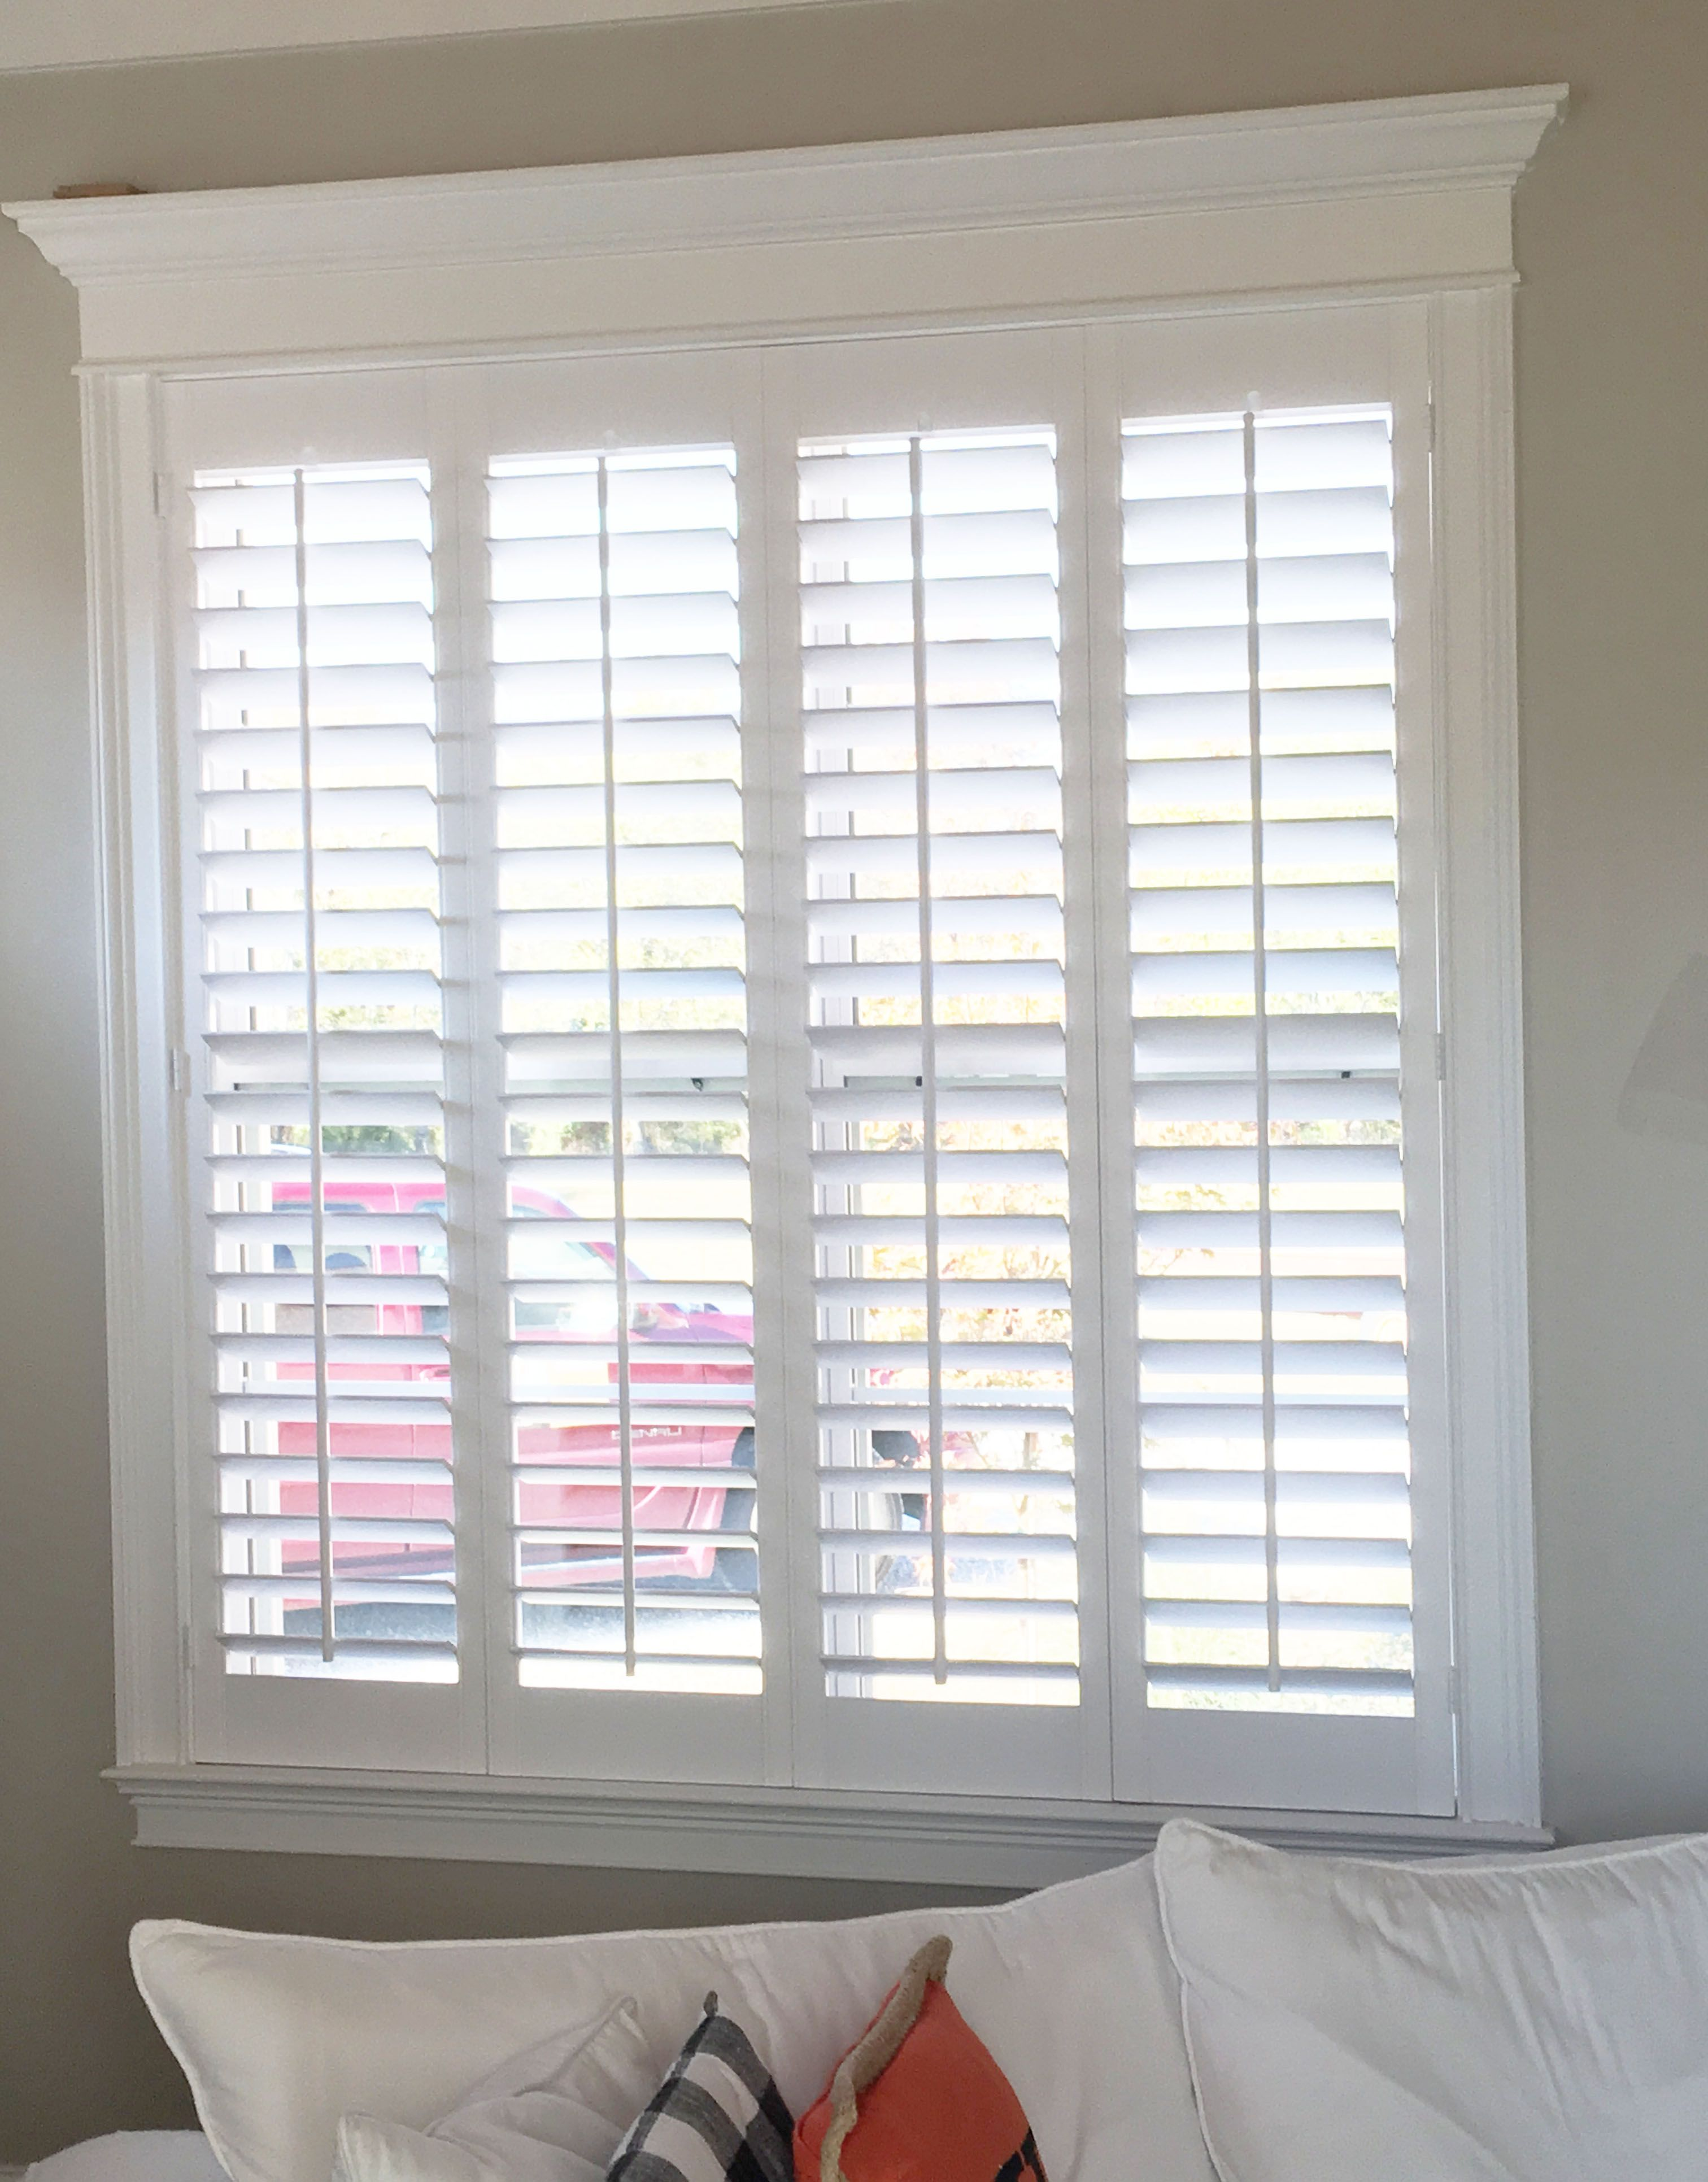 Window shopping: How to buy blinds and shutters